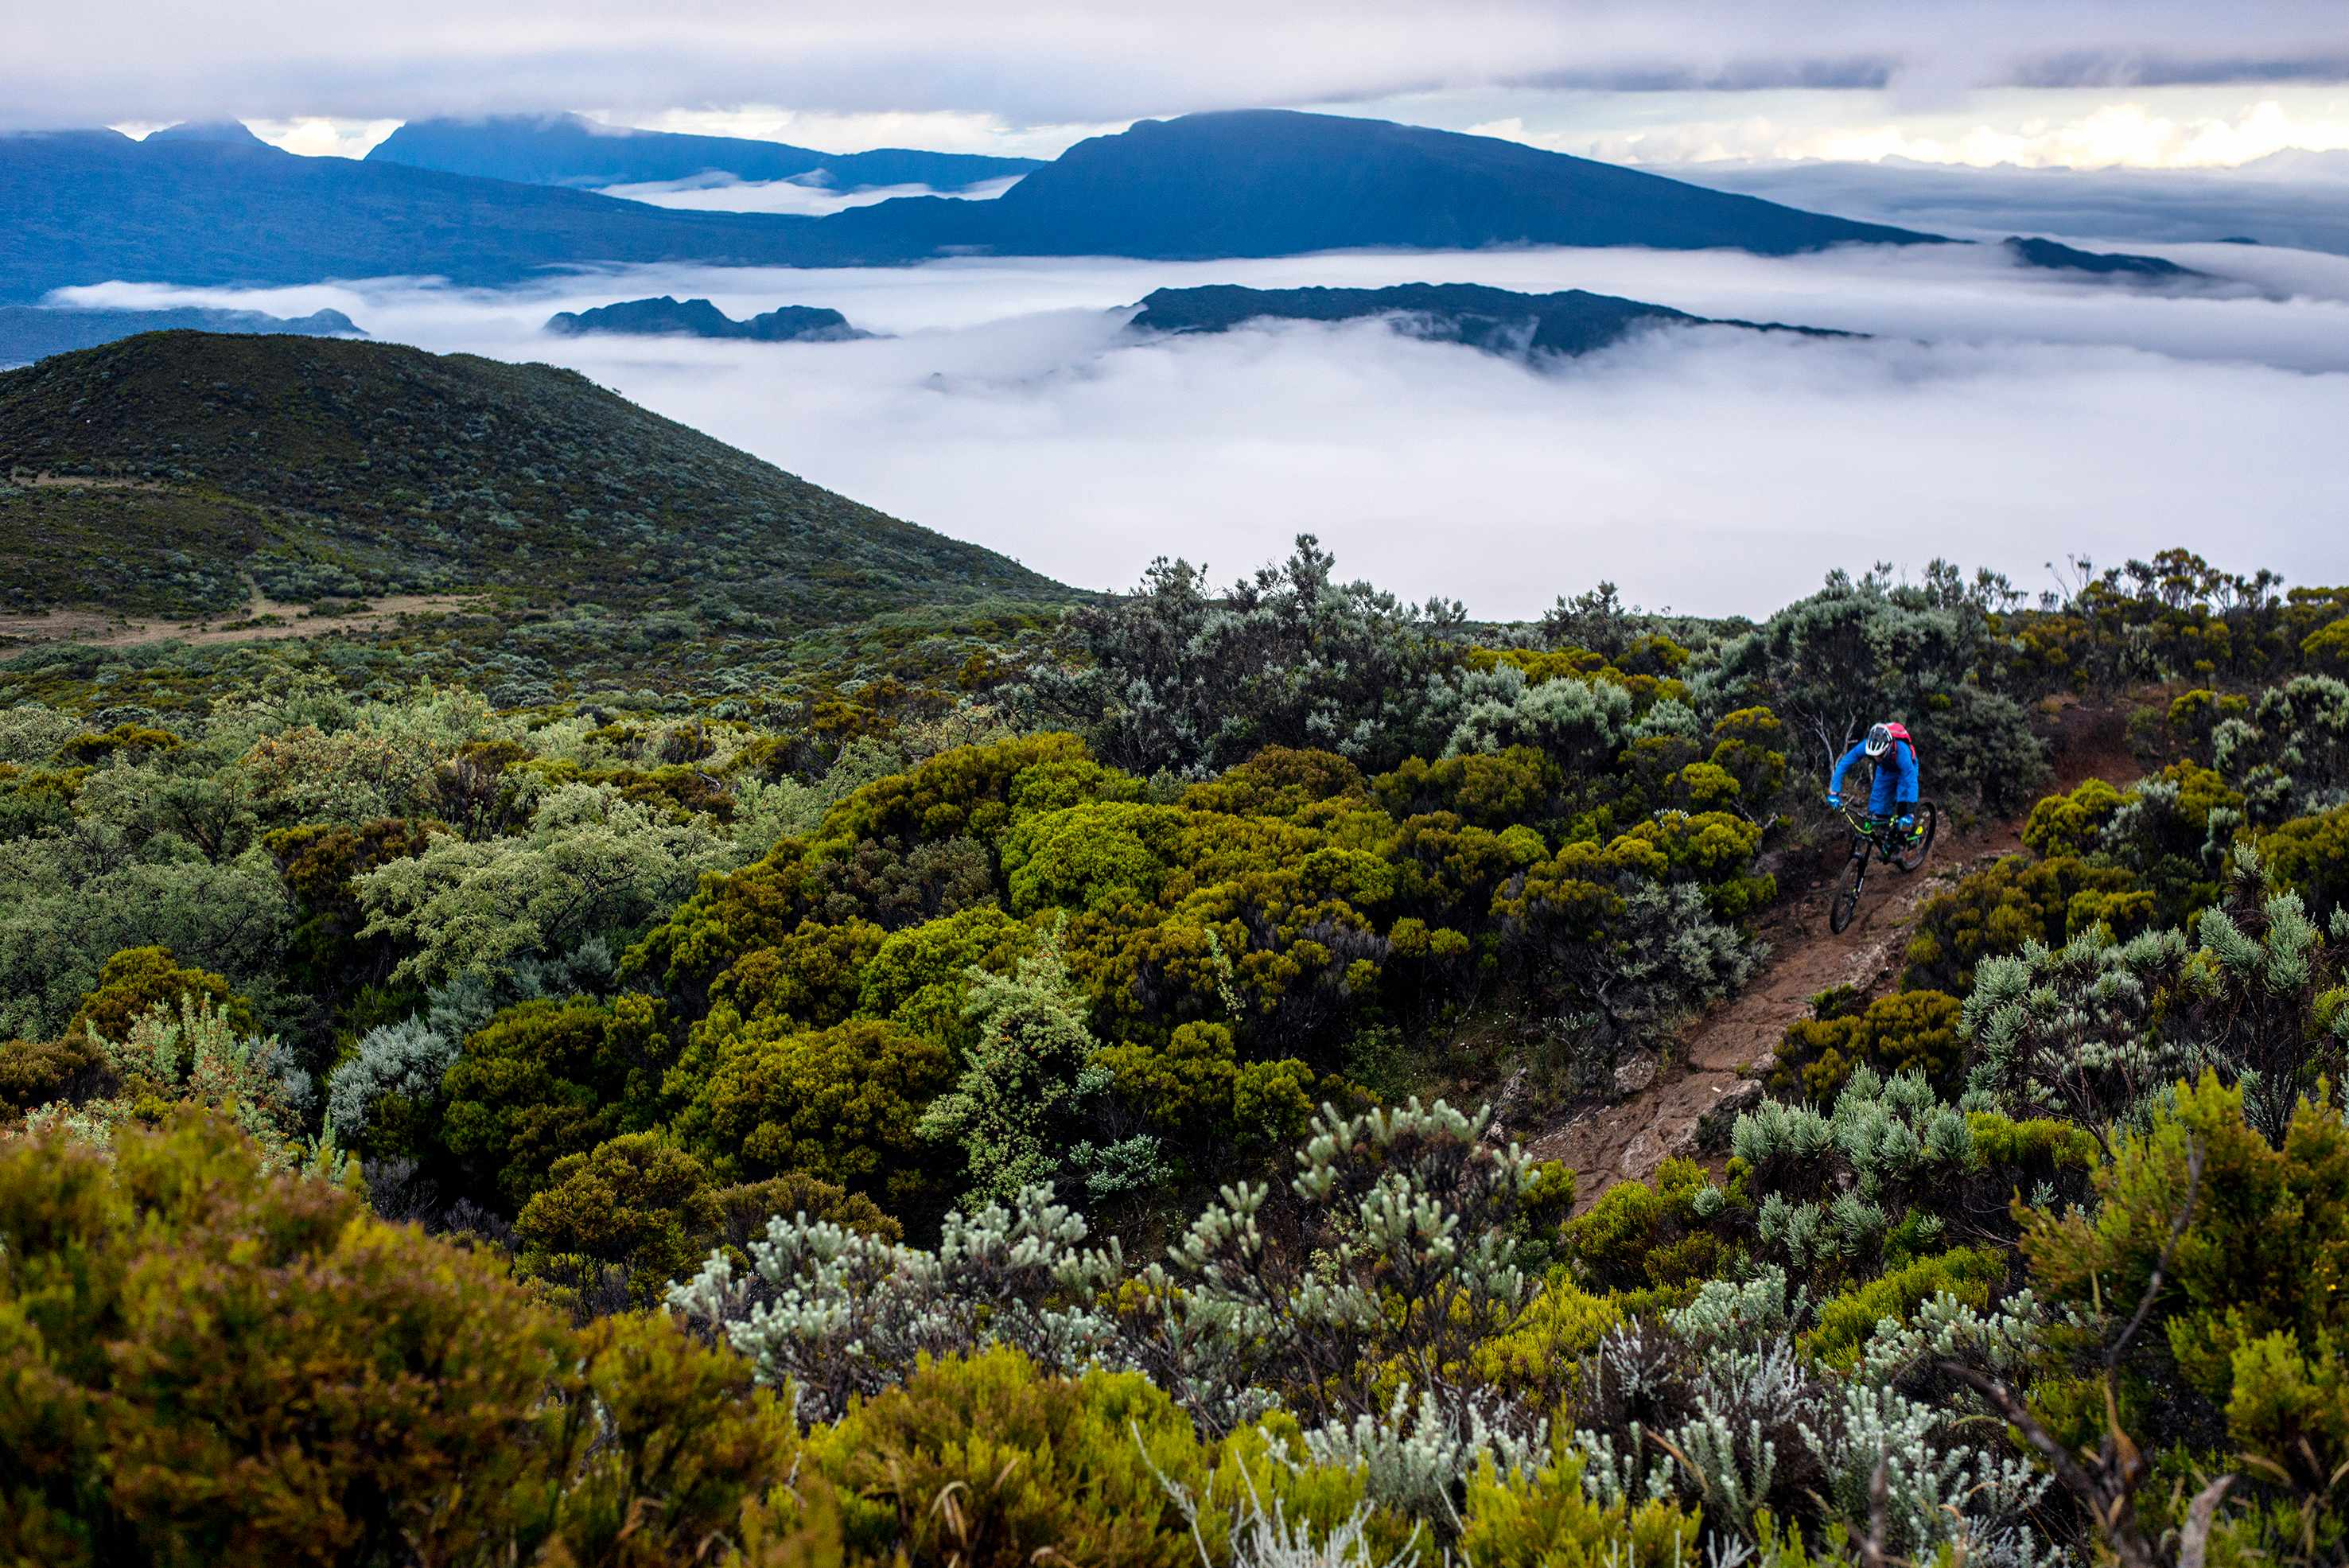 Riding on the volcanic landscapes of Reunion Island